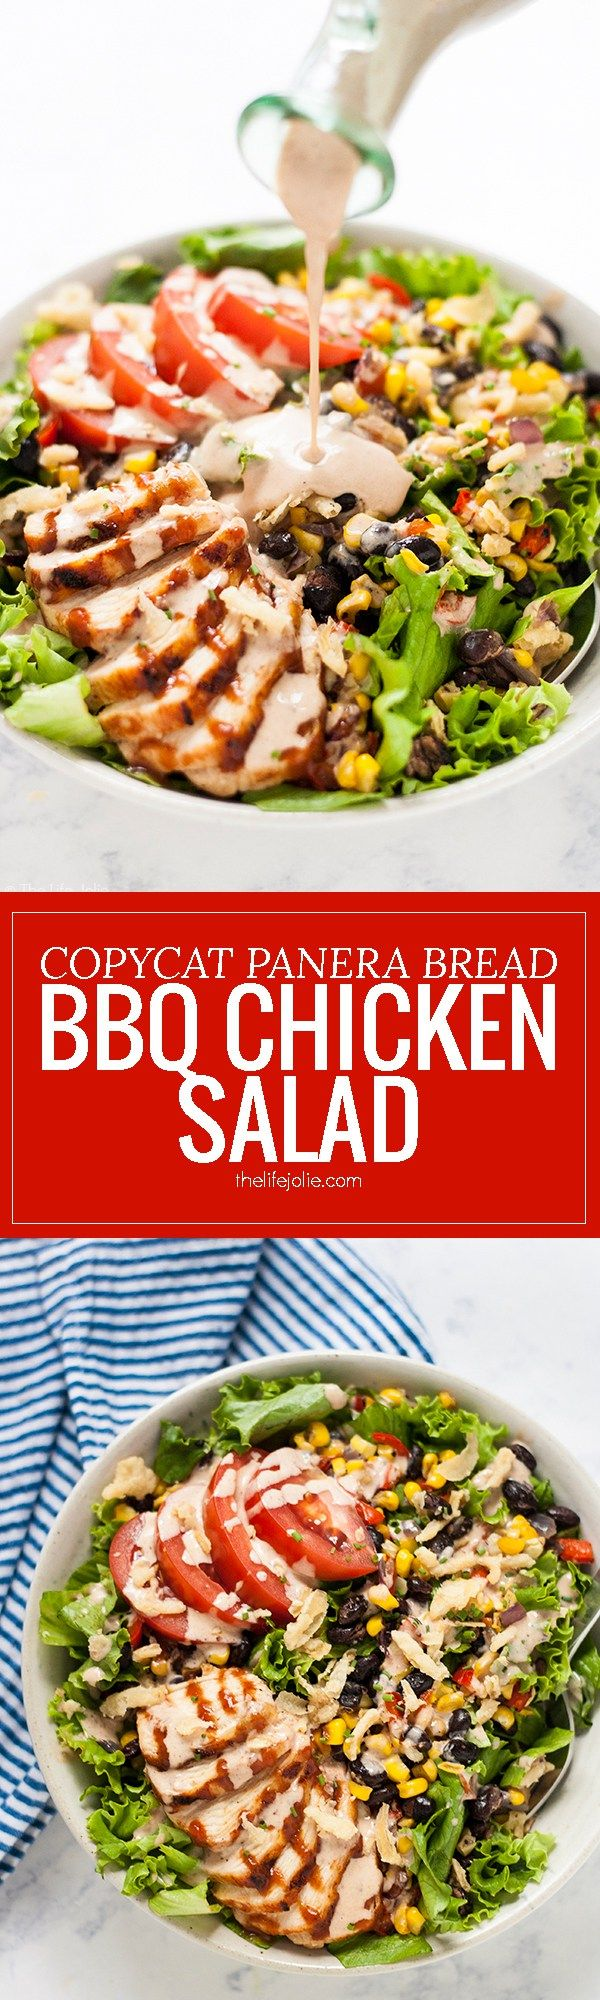 This Copycat Panera Bread BBQ Chicken Salad recipe is a delicious lunch or dinner. Chopped lettuce, tender grilled chicken, roasted corn salsa, tomatoes and crispy french fried onions round out this salad with tangy BBQ sauce and BBQ Ranch dressing drizzled over the top. It's as healthy as it is tasty and so quick and easy that it practically begs you to make it for a simple weeknight dinner!